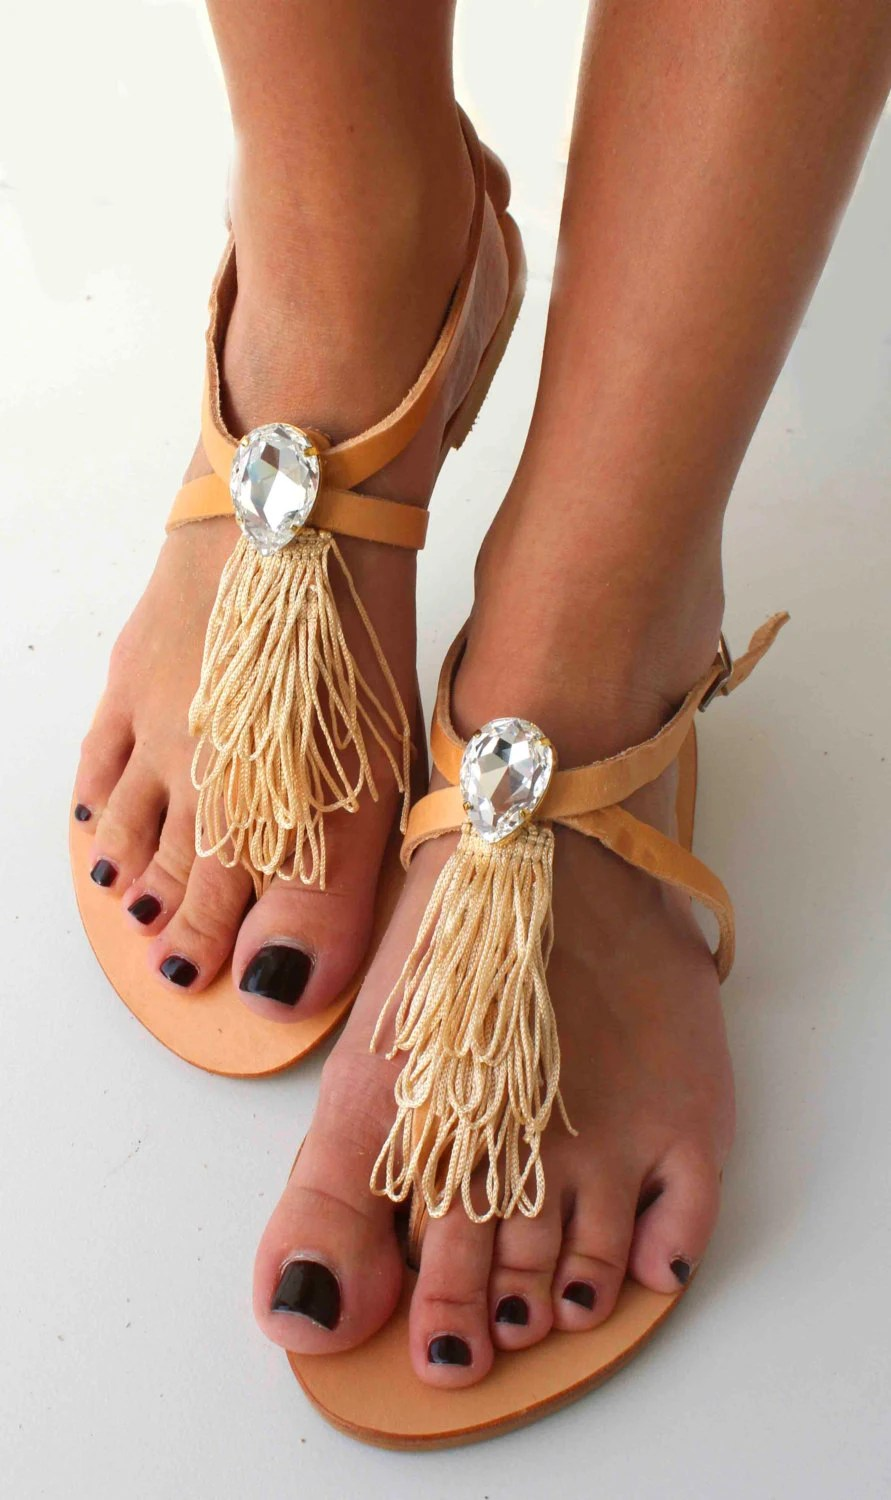 Leather Sandals with Swarovski teardrop - Beige and natural sandals - Mykonos Sandals